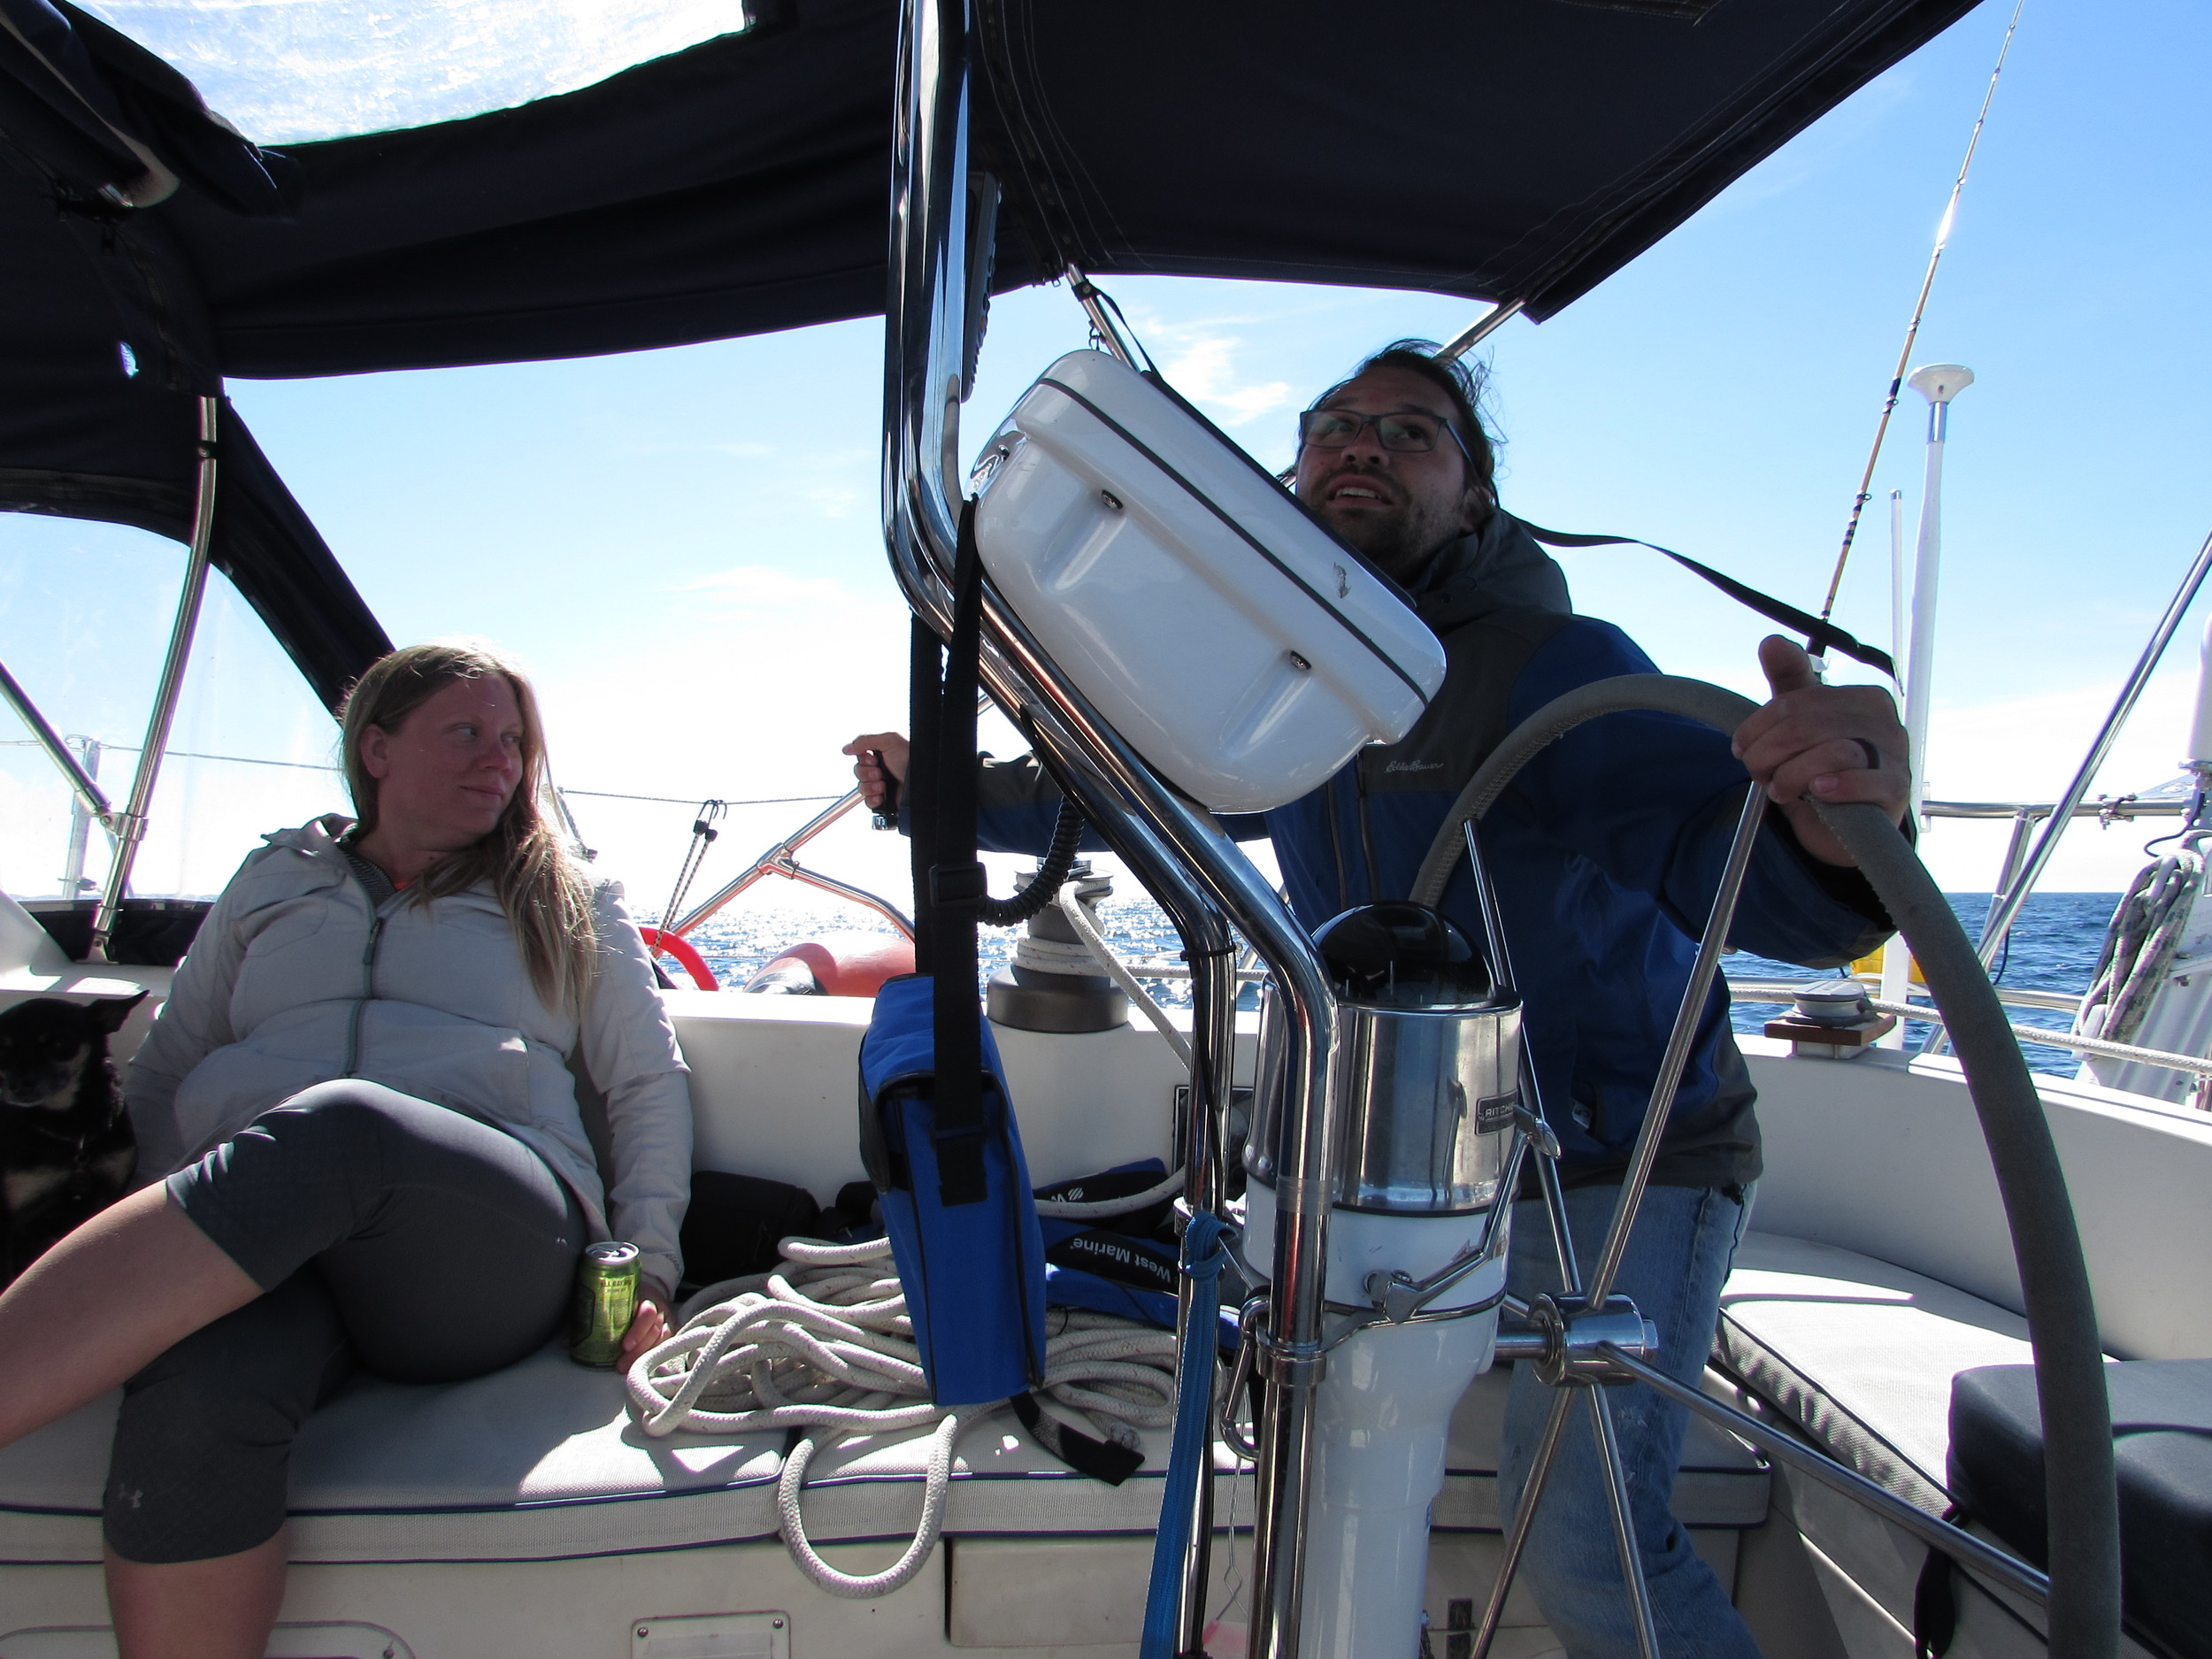 Steady the sails. Have a brew. Mary and Tharon are on deck.